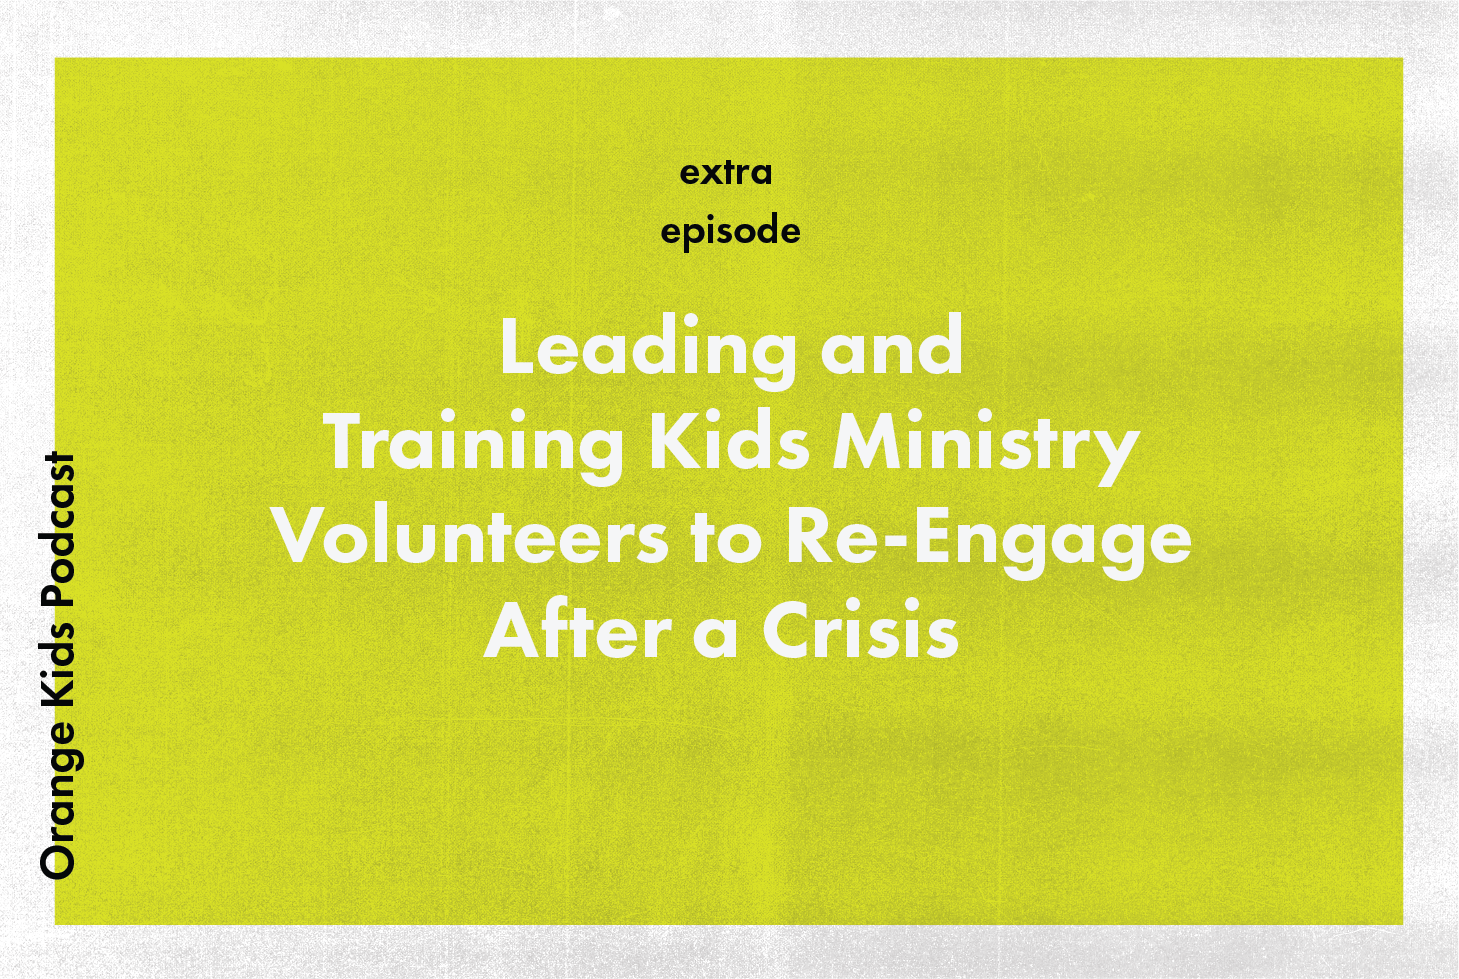 OKP Extra: Leading And Training Kids Ministry Volunteers to Re-Engage After A Crisis